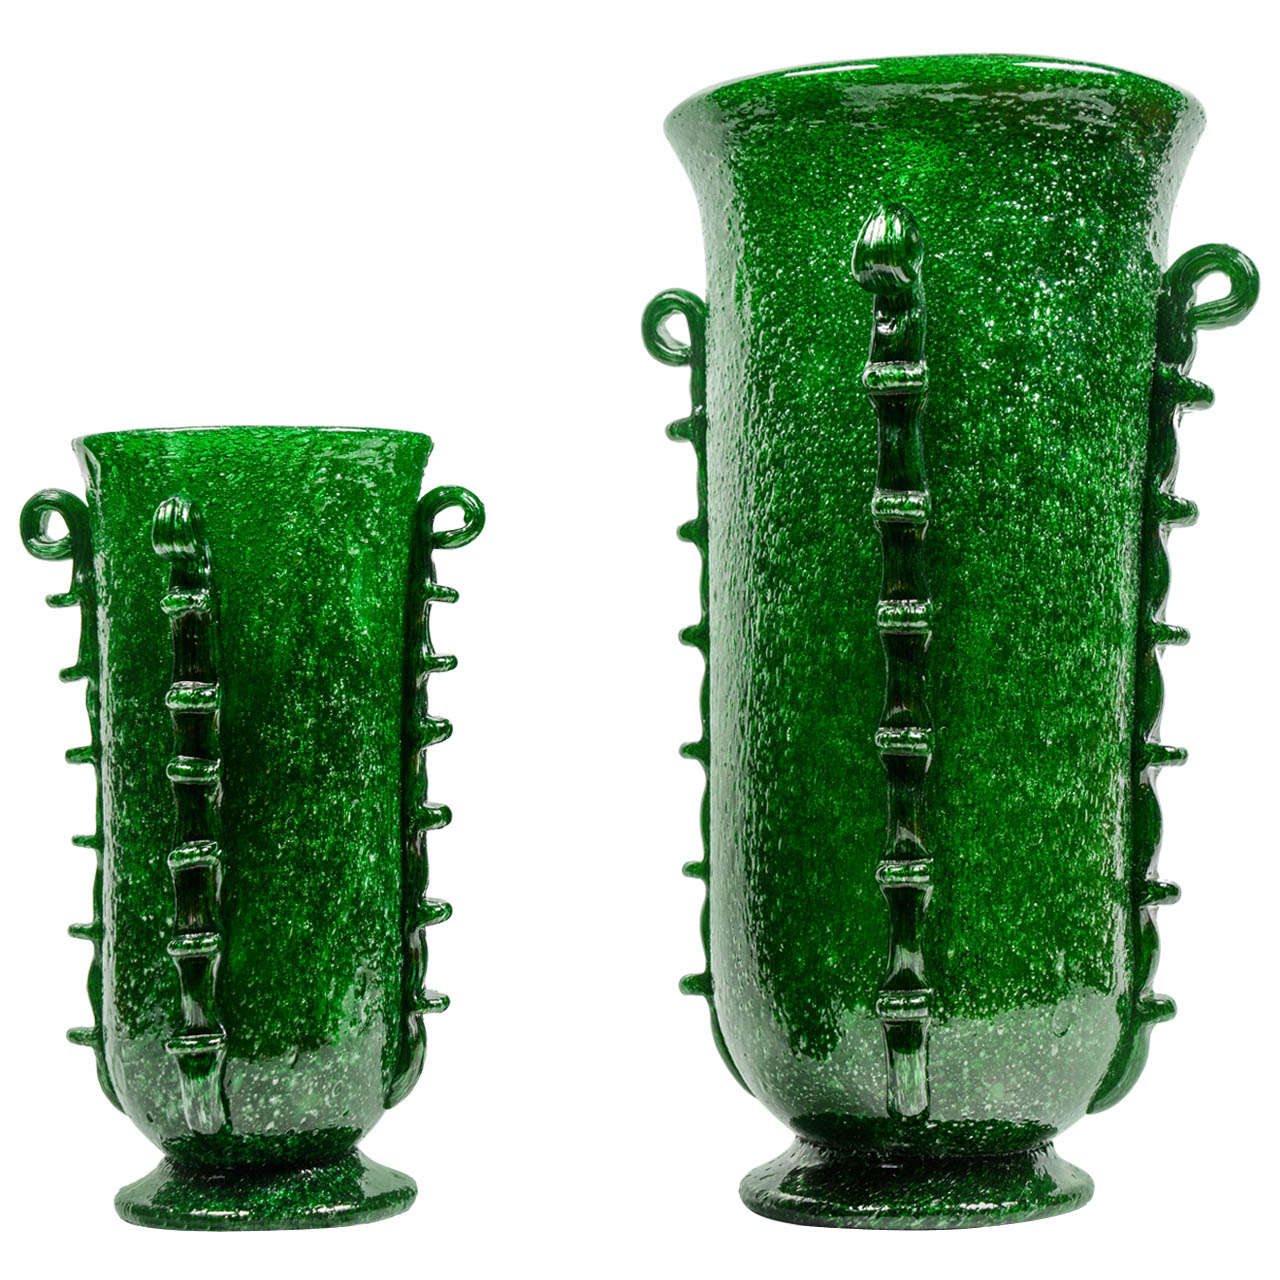 Rare pair of green murano glass vases by napoleone martinuzzi at rare pair of green murano glass vases by napoleone martinuzzi for sale reviewsmspy